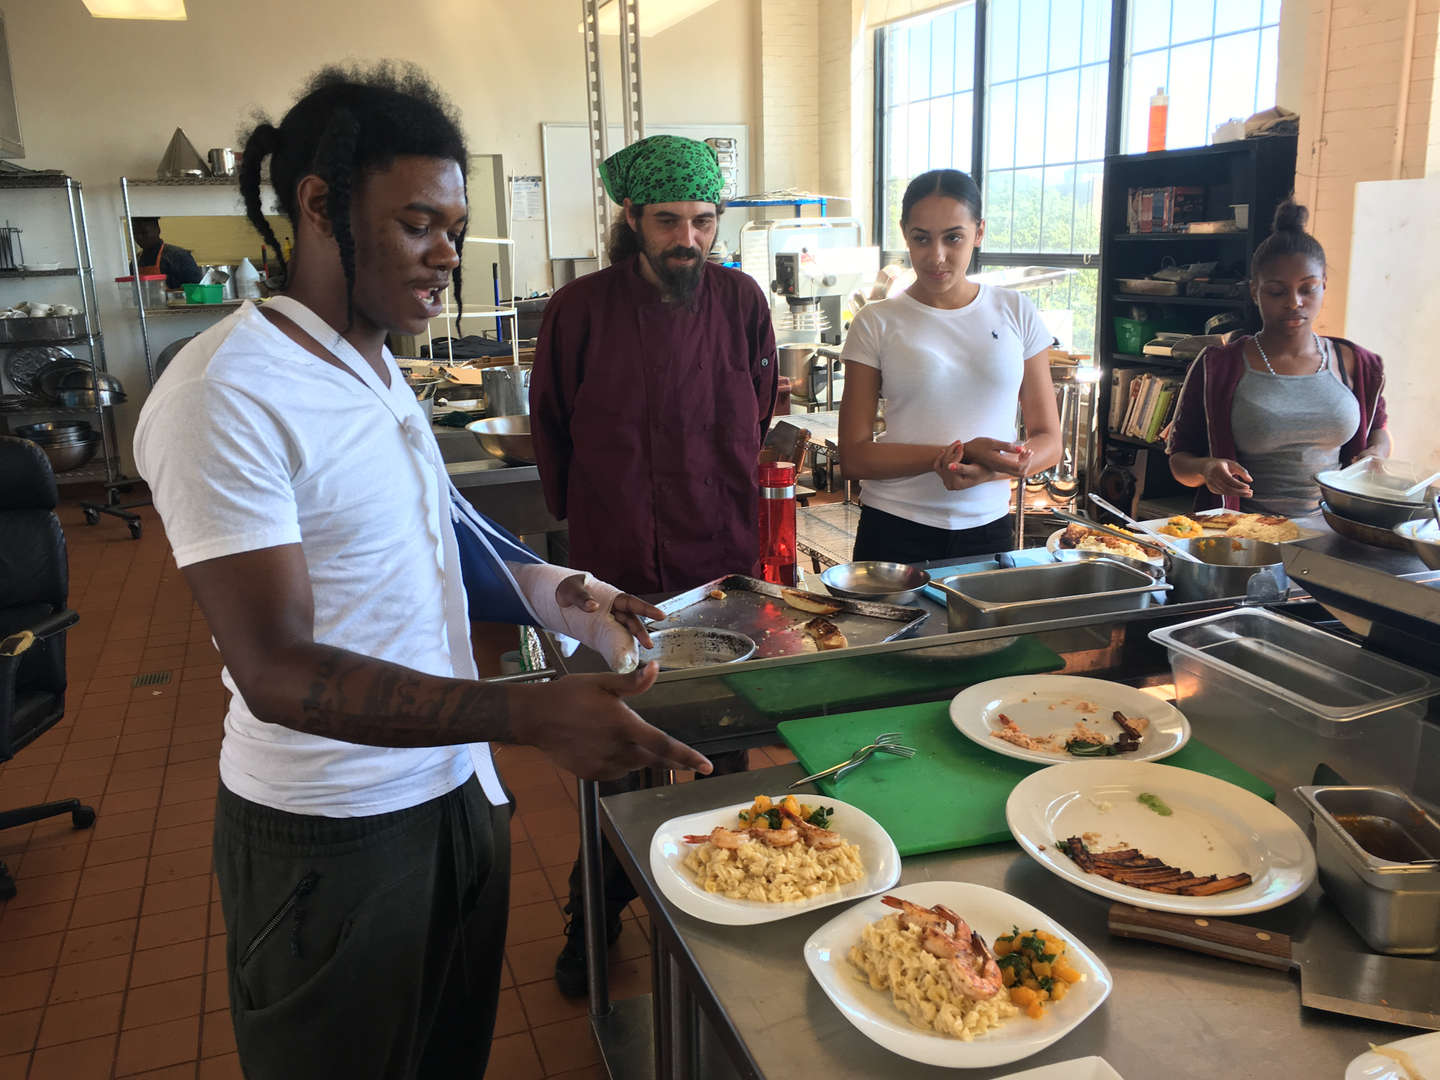 Culinary student Savian Eugene explains his dish to Chef.